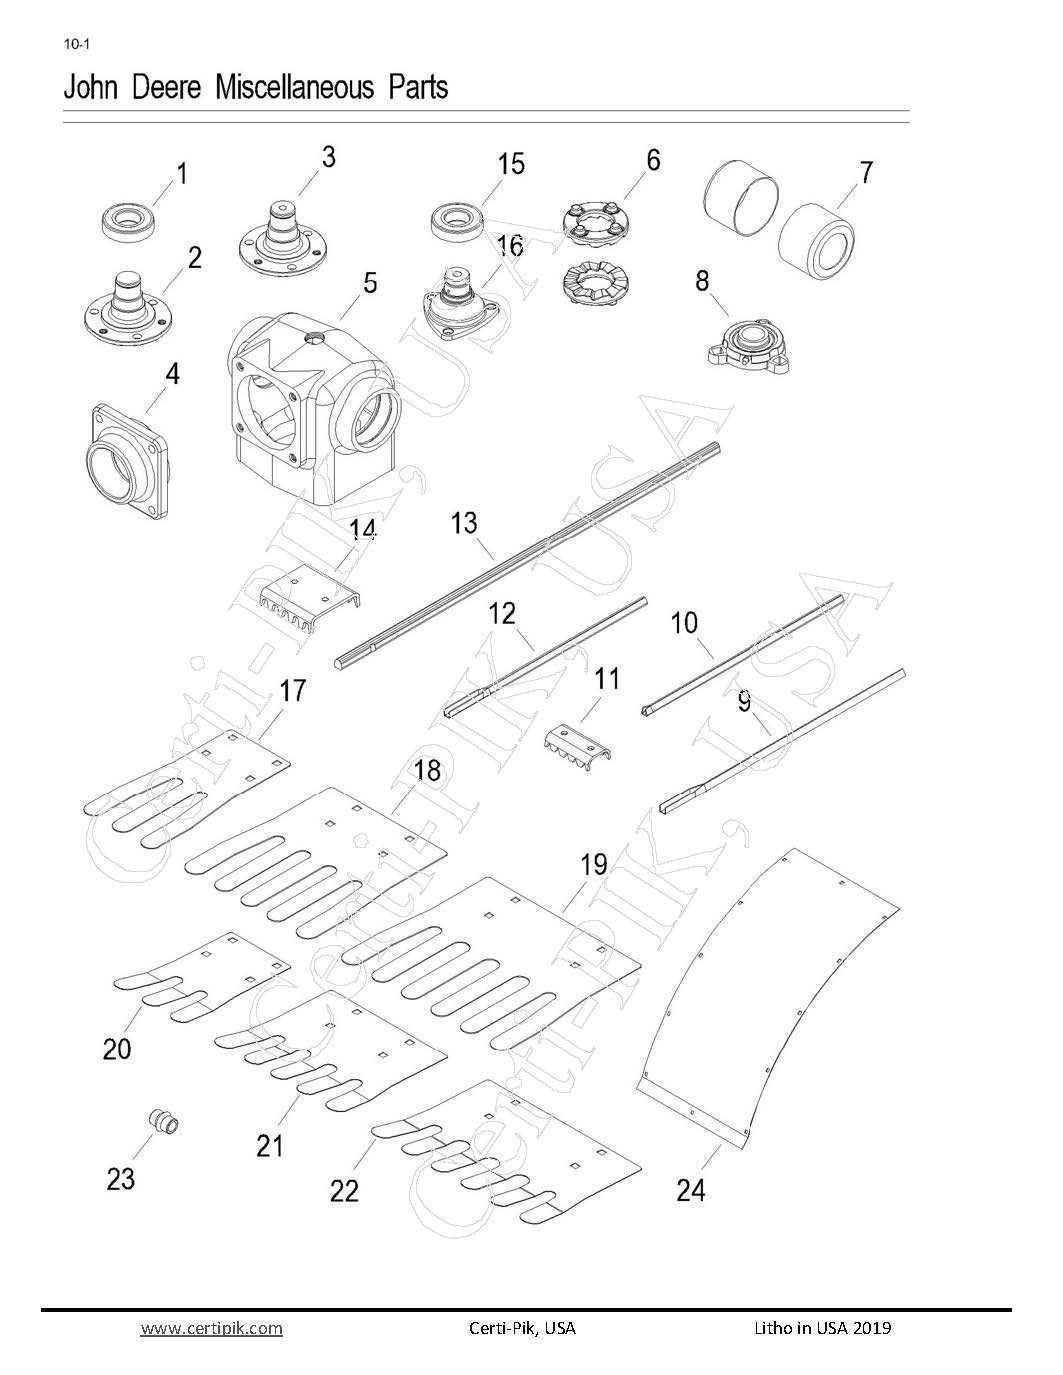 10820P-10 - John Deere Miscellaneous Parts